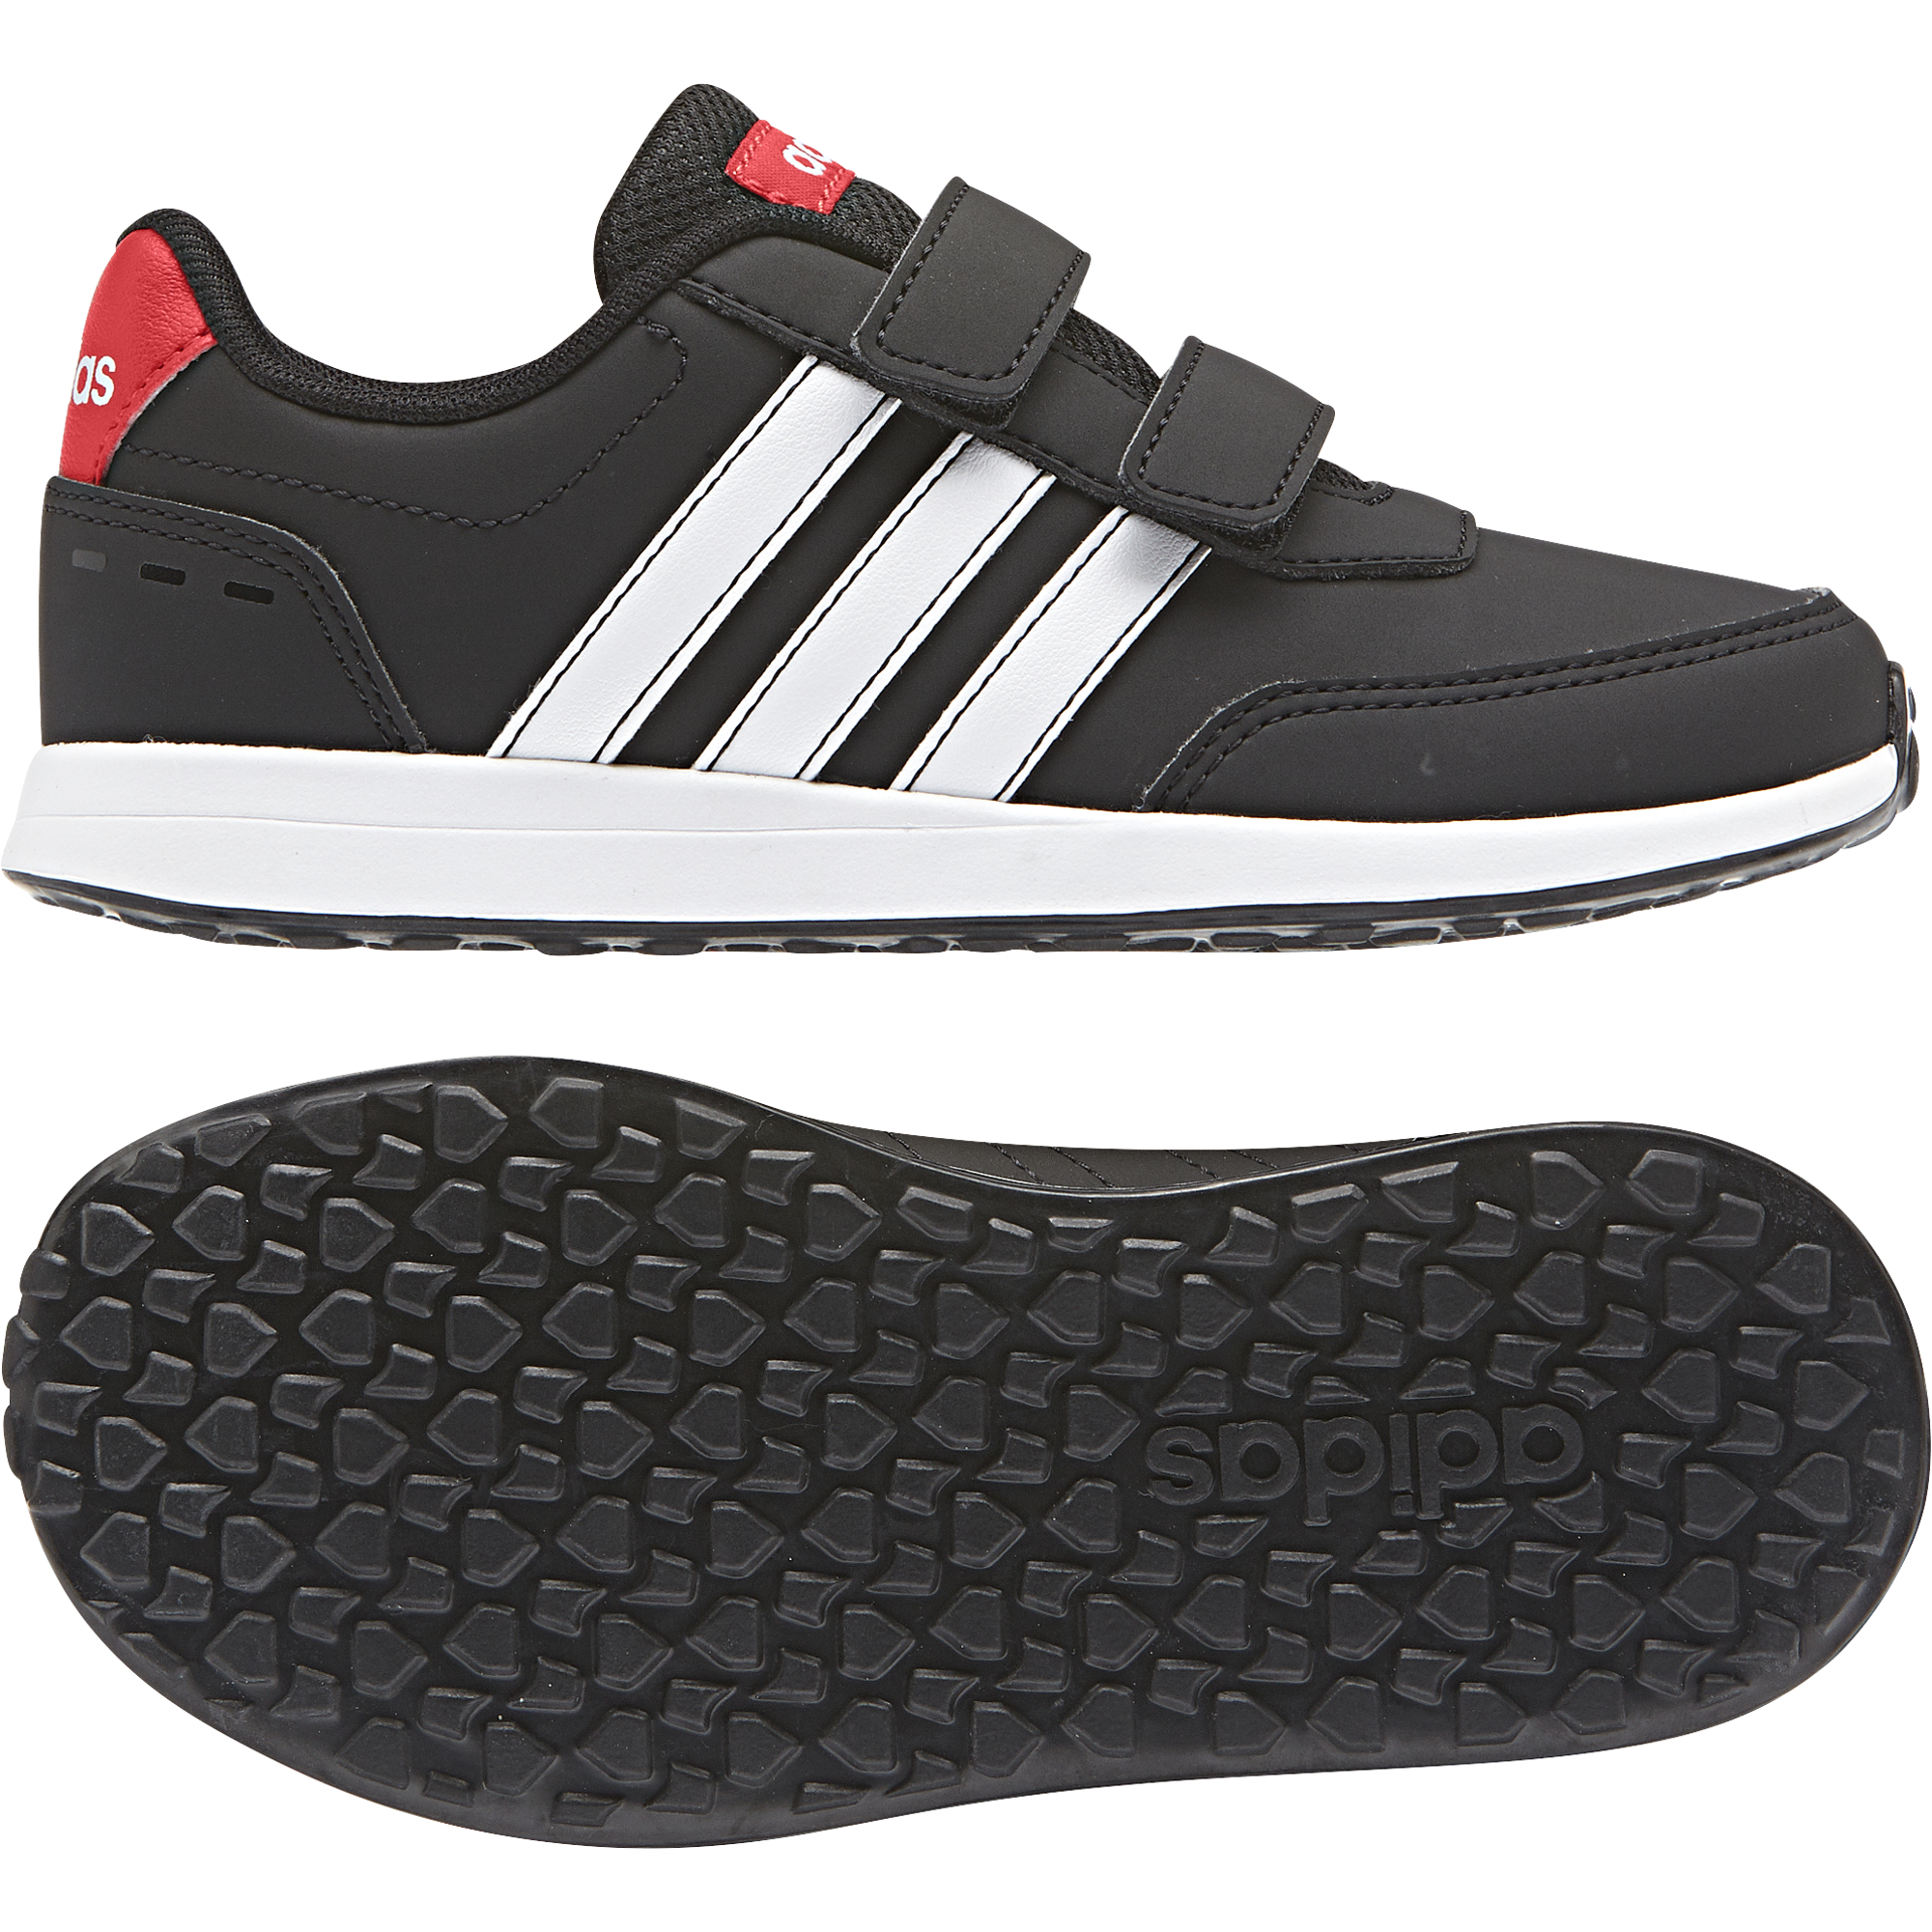 adidas VS SWITCH 2 CMF, čierne -30%